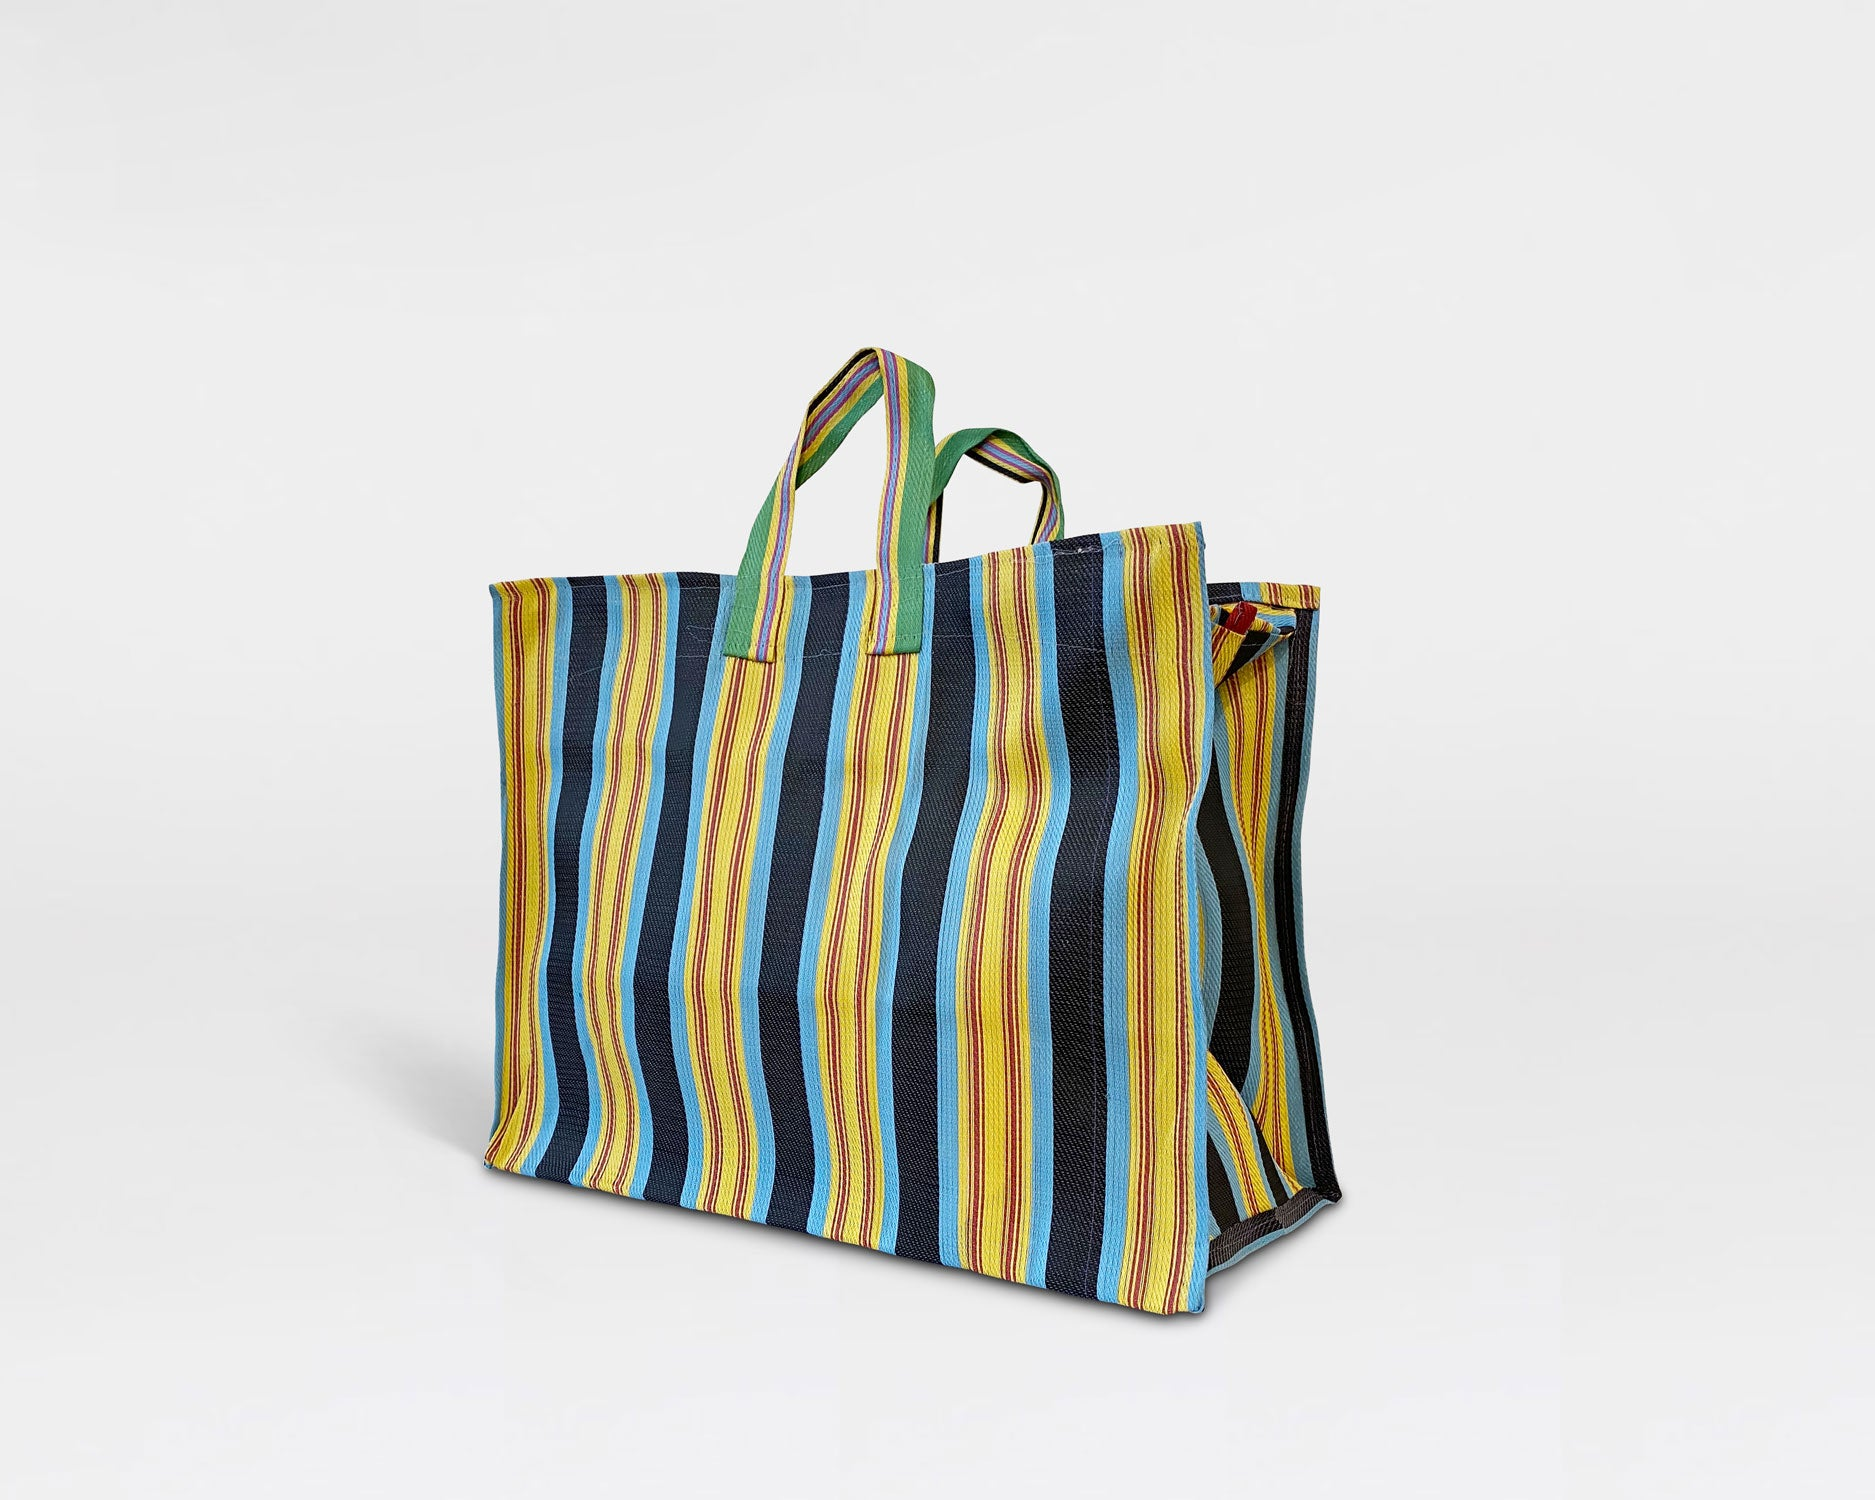 Day-to-Day Bag - Medium 030